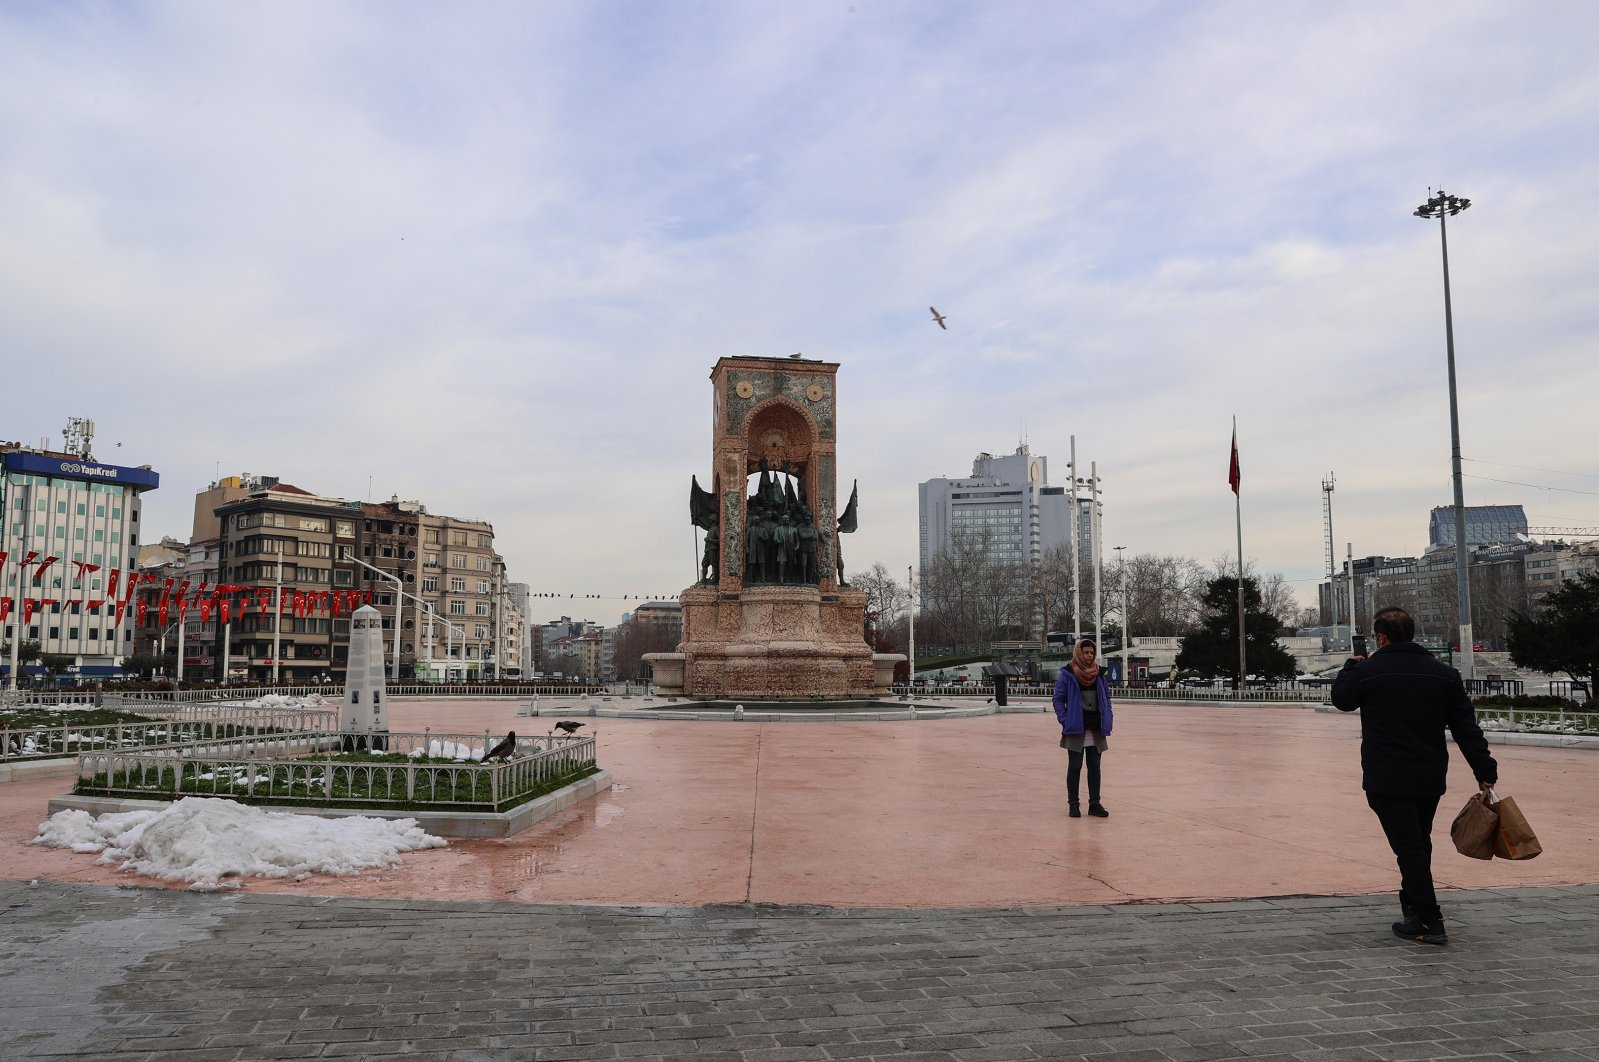 The famous Taksim Square, normally bustling with people, is nearly empty due to COVID-19 restrictions in Istanbul, Turkey, Feb. 20, 2021. (AA Photo)